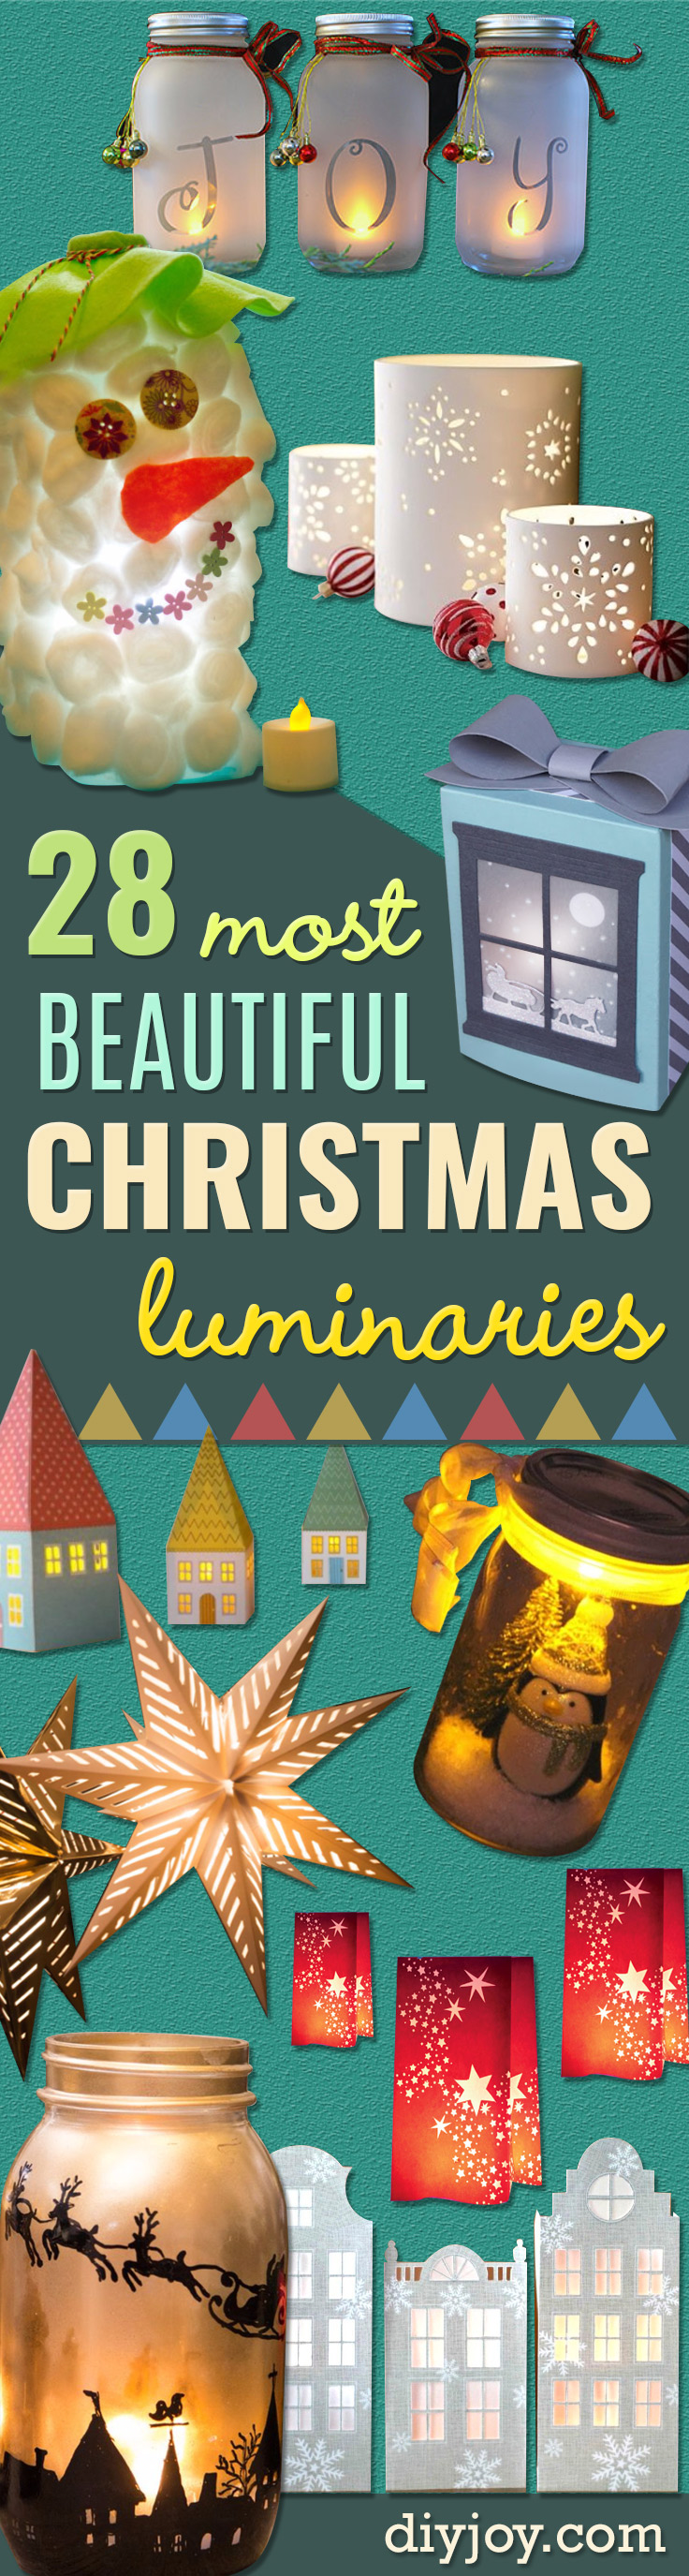 28 most beautiful christmas luminaries for Most beautiful christmas photos